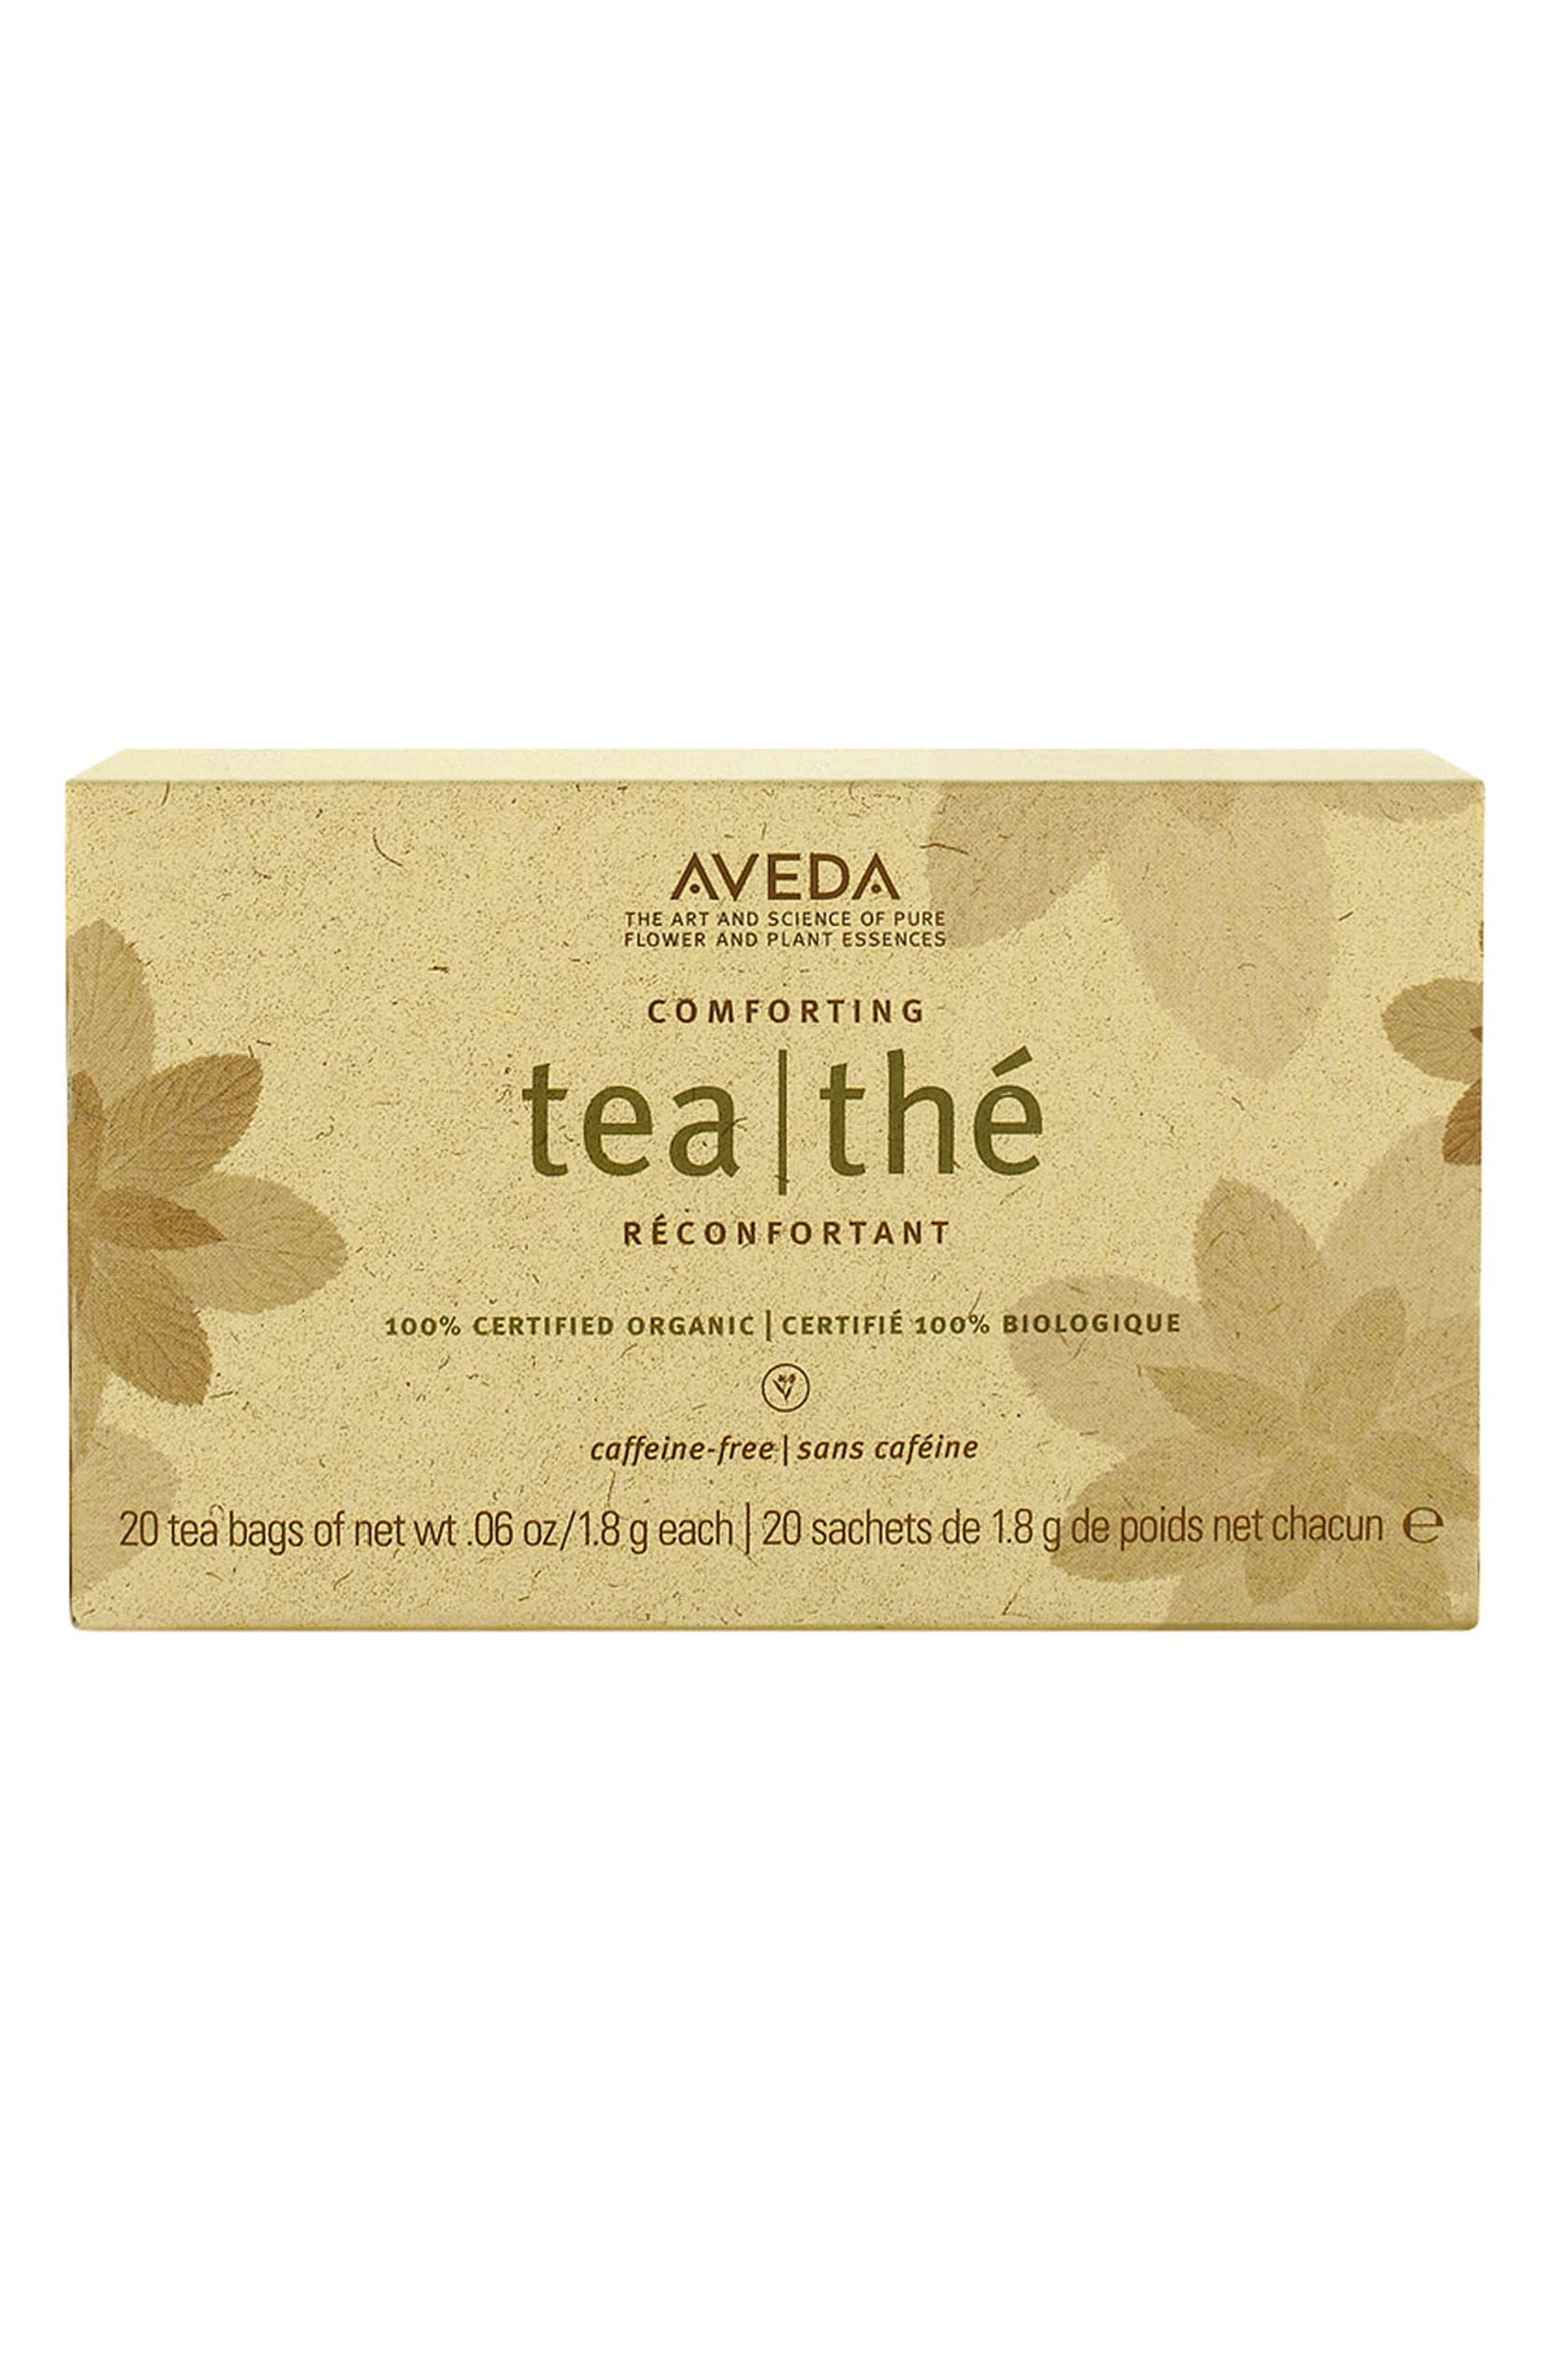 are comforting salon comforter aveda gift holiday moments tea blog by and spa gentlemen a ladies sets